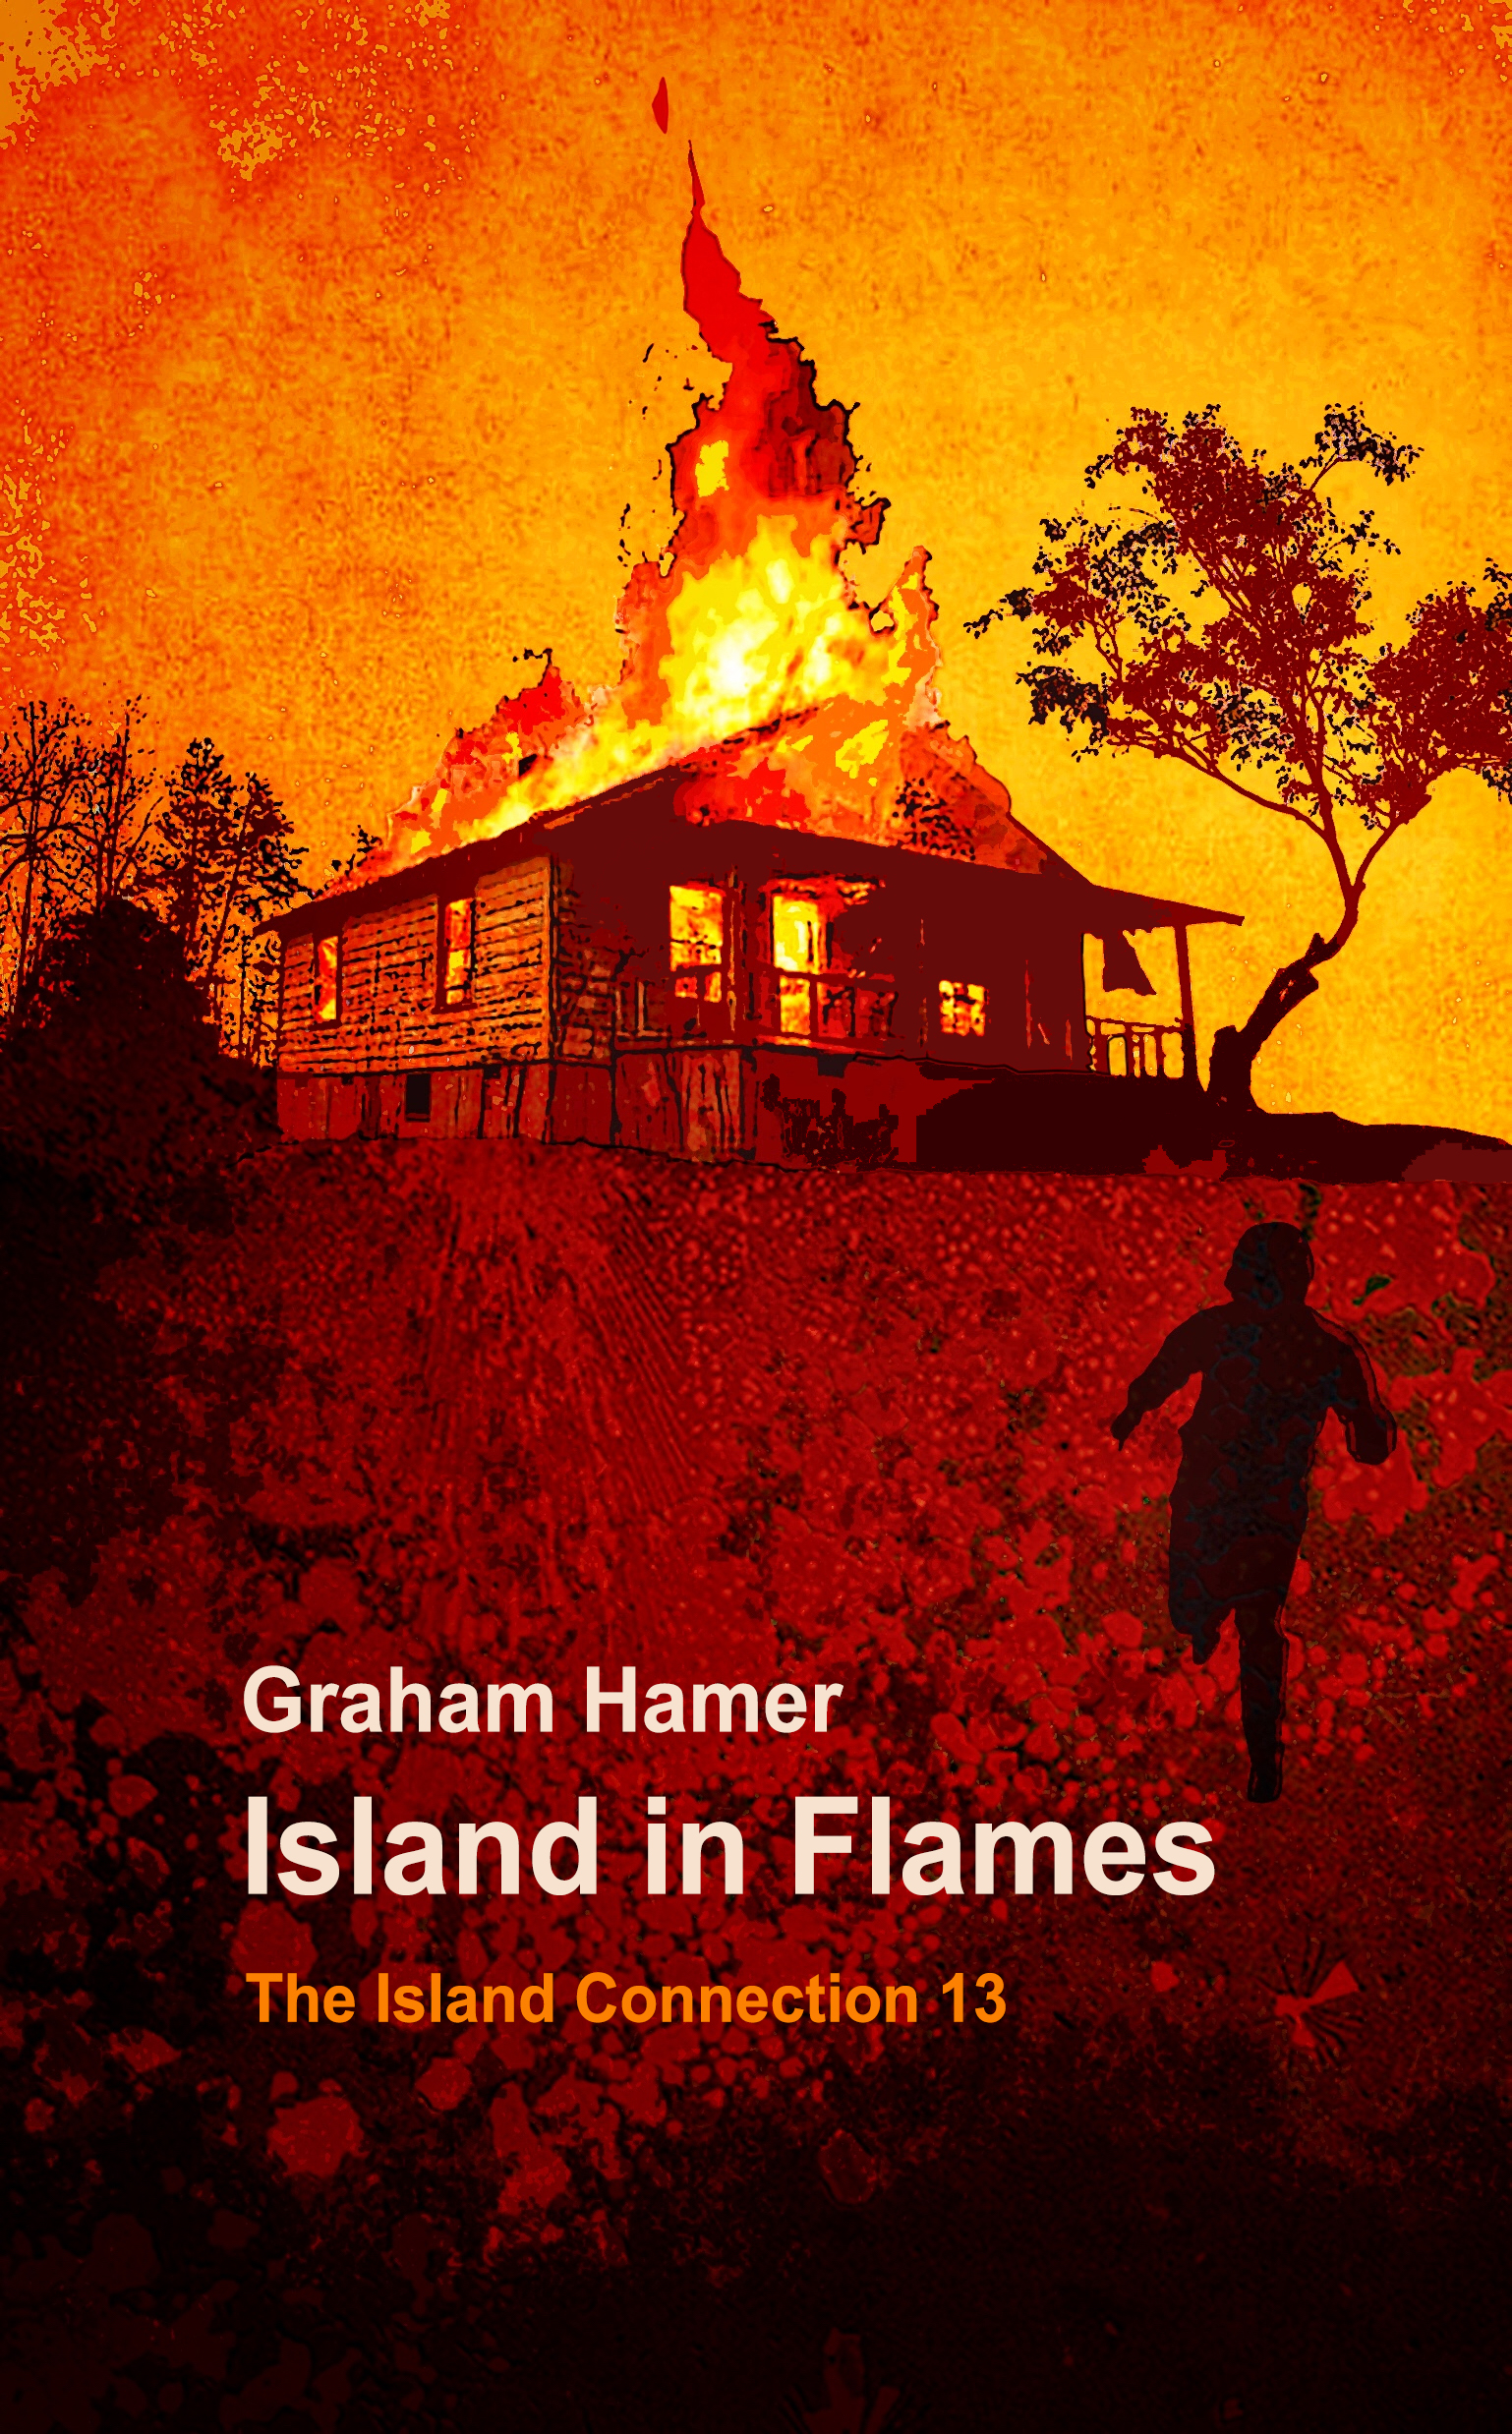 Graham Hamer's Books - Island in Flames in the Island Connection series